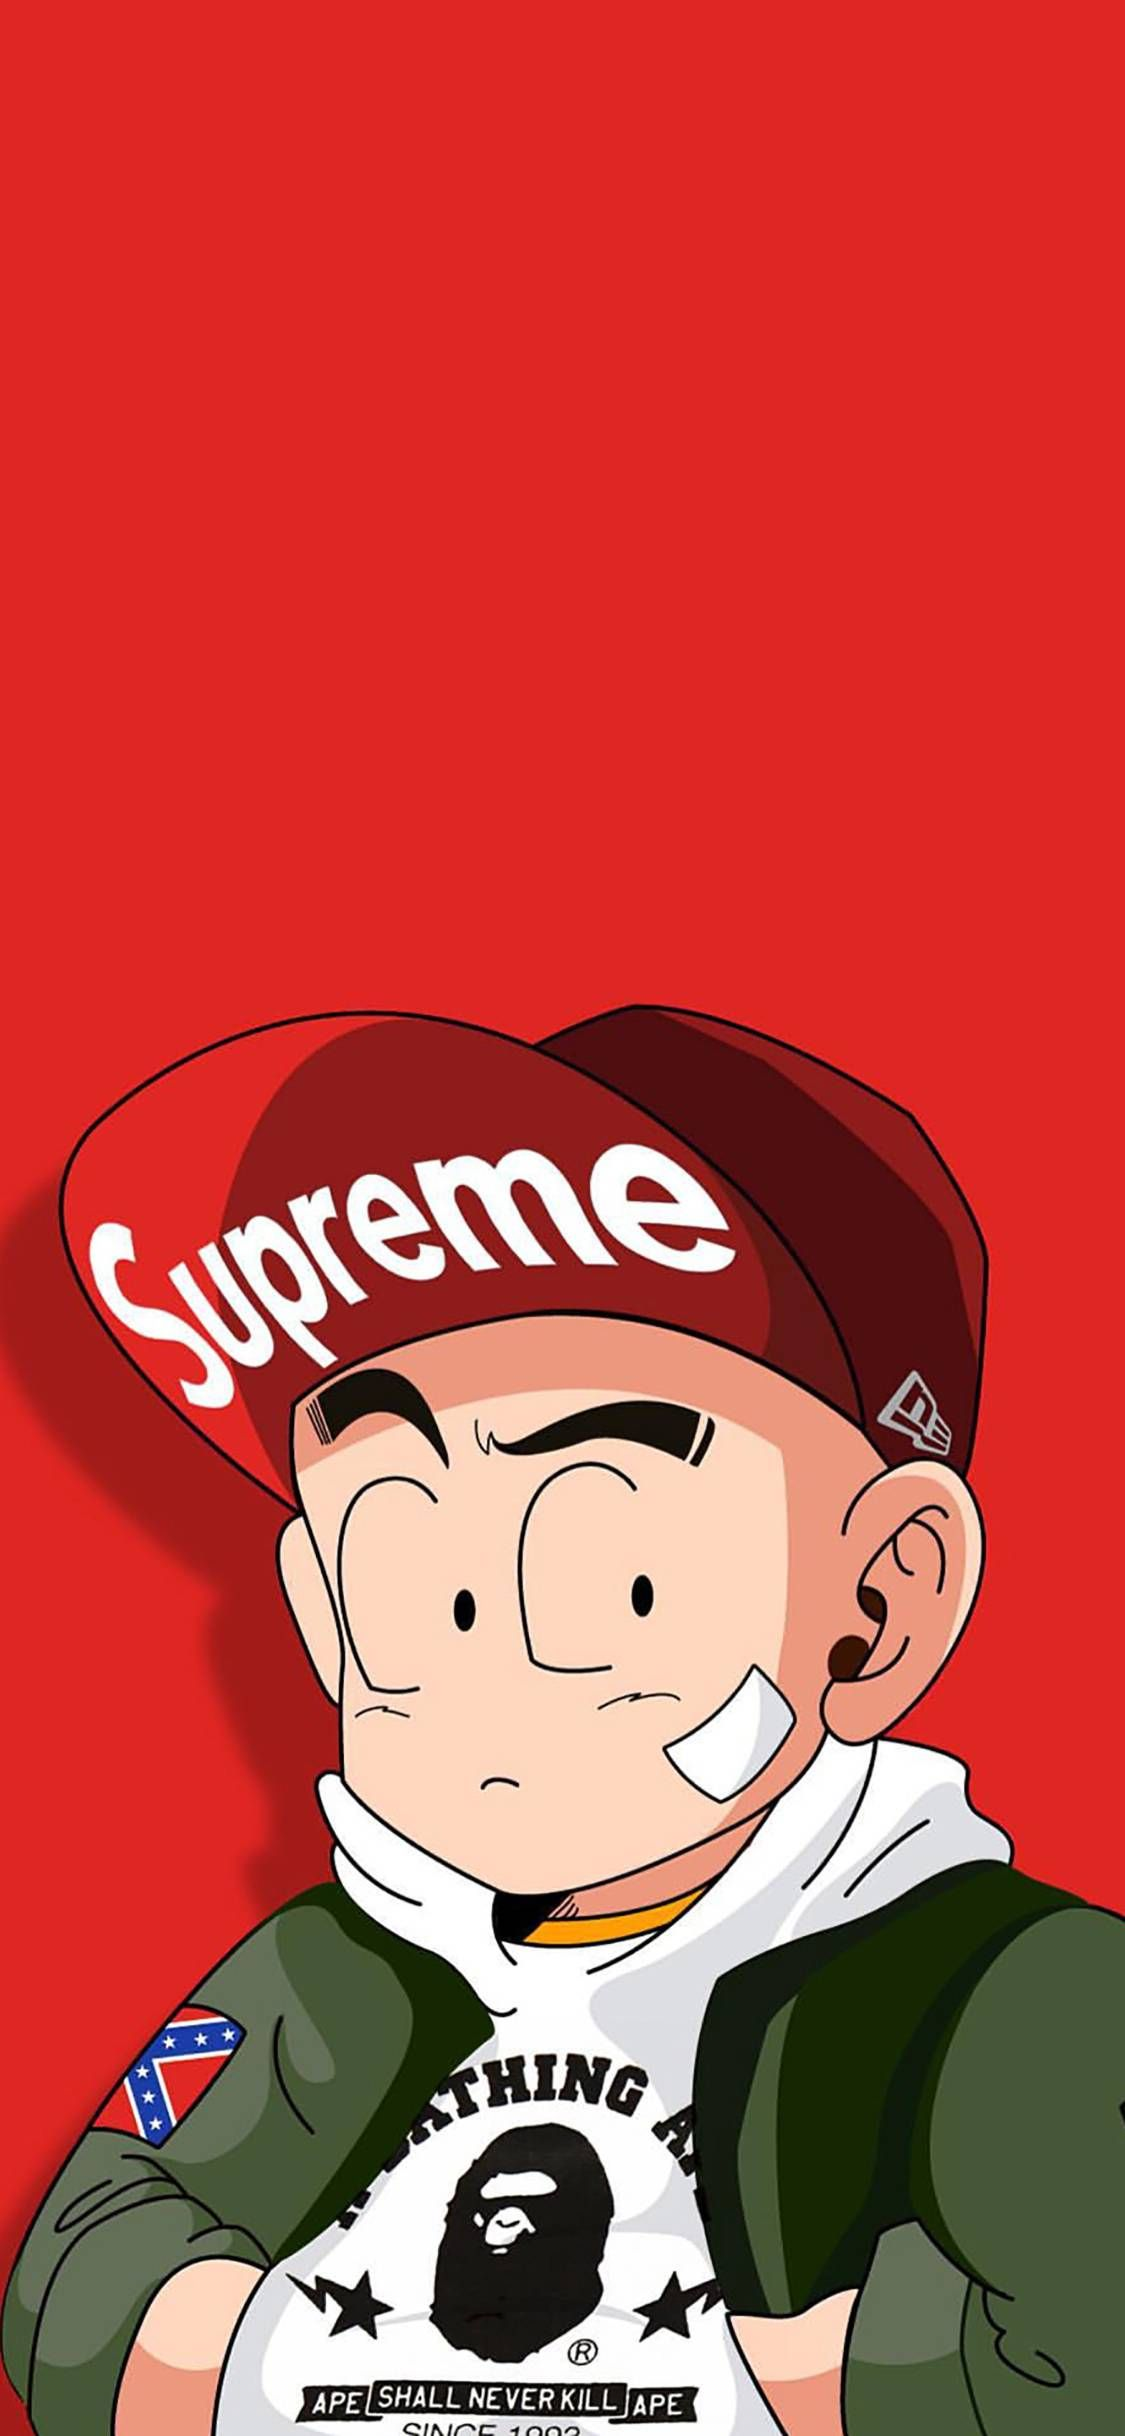 Long Zhu Exceeds Fashionable Current Flow To Paint Caricature Supreme Red Wallpapers For I Supreme Iphone Wallpaper Goku Wallpaper Iphone Kaws Iphone Wallpaper